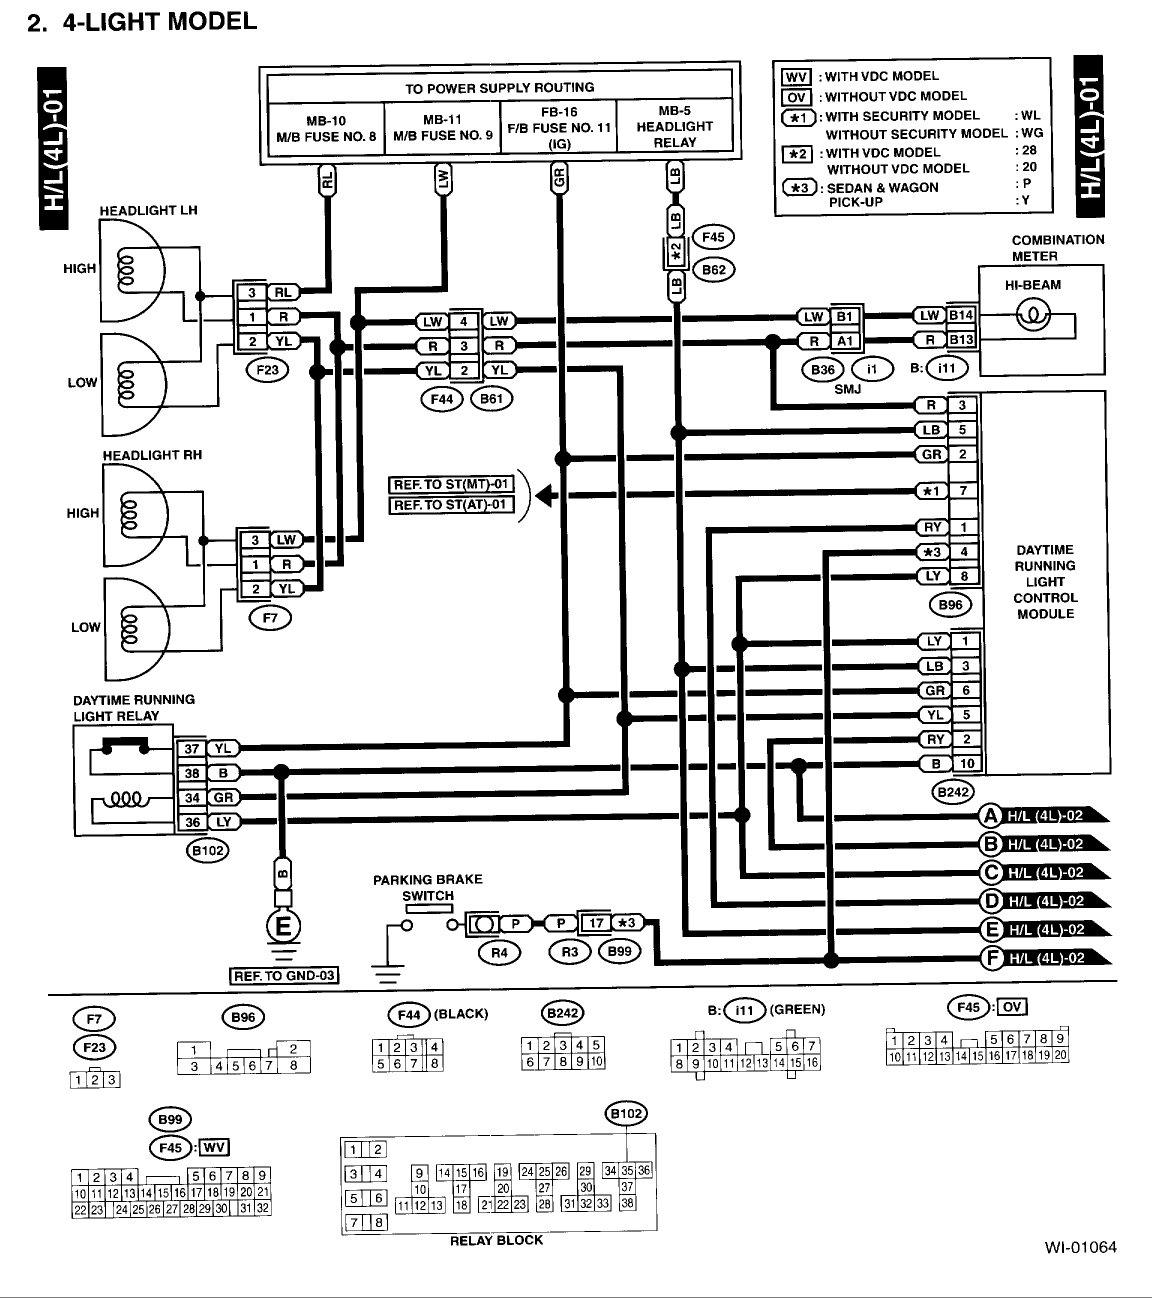 2001 Subaru Outback Wiring Harness Diagram - Wiring Diagram Expert on